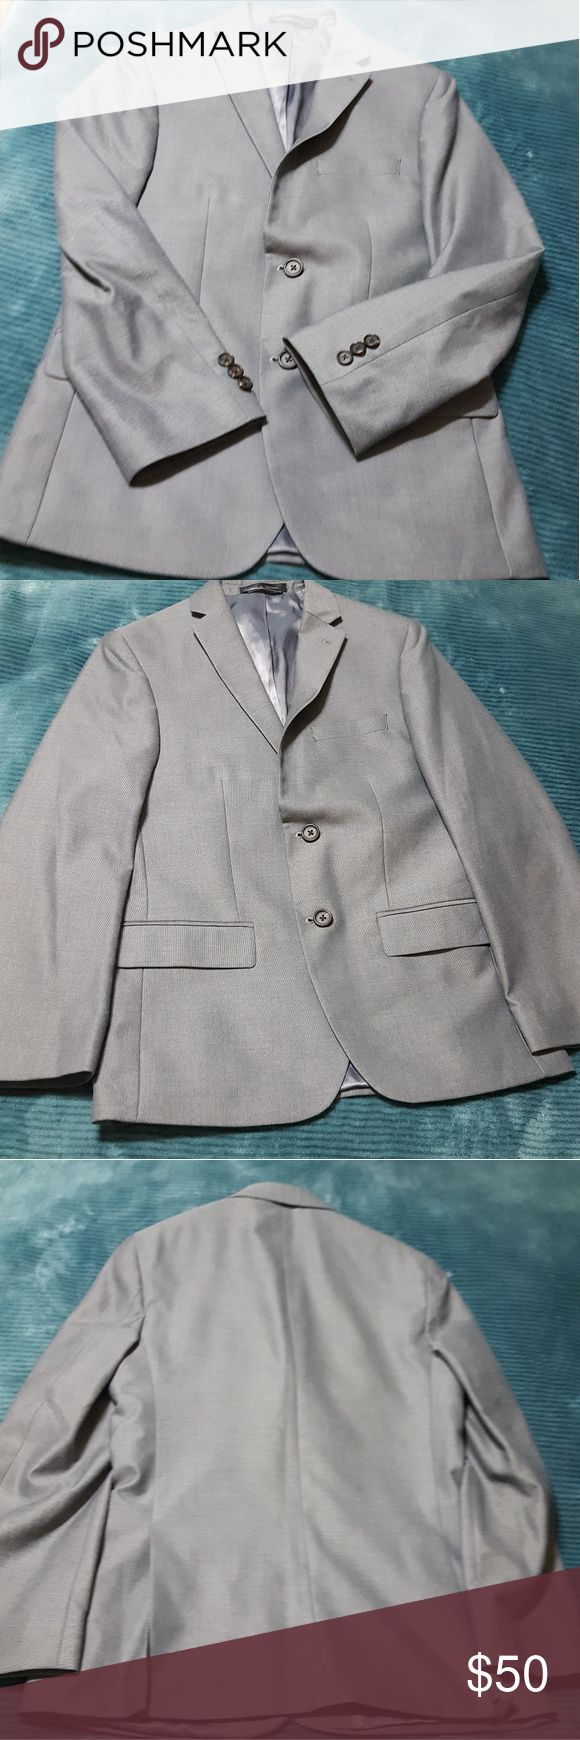 Ralph Lauren Boy's Size 14R Sport Coat Blazer 14R Boy's Sport Coat Blazer Jacket by Ralph Lauren. Great condition. 2 button front in a grey tone. Ralph Lauren Jackets & Coats Blazers